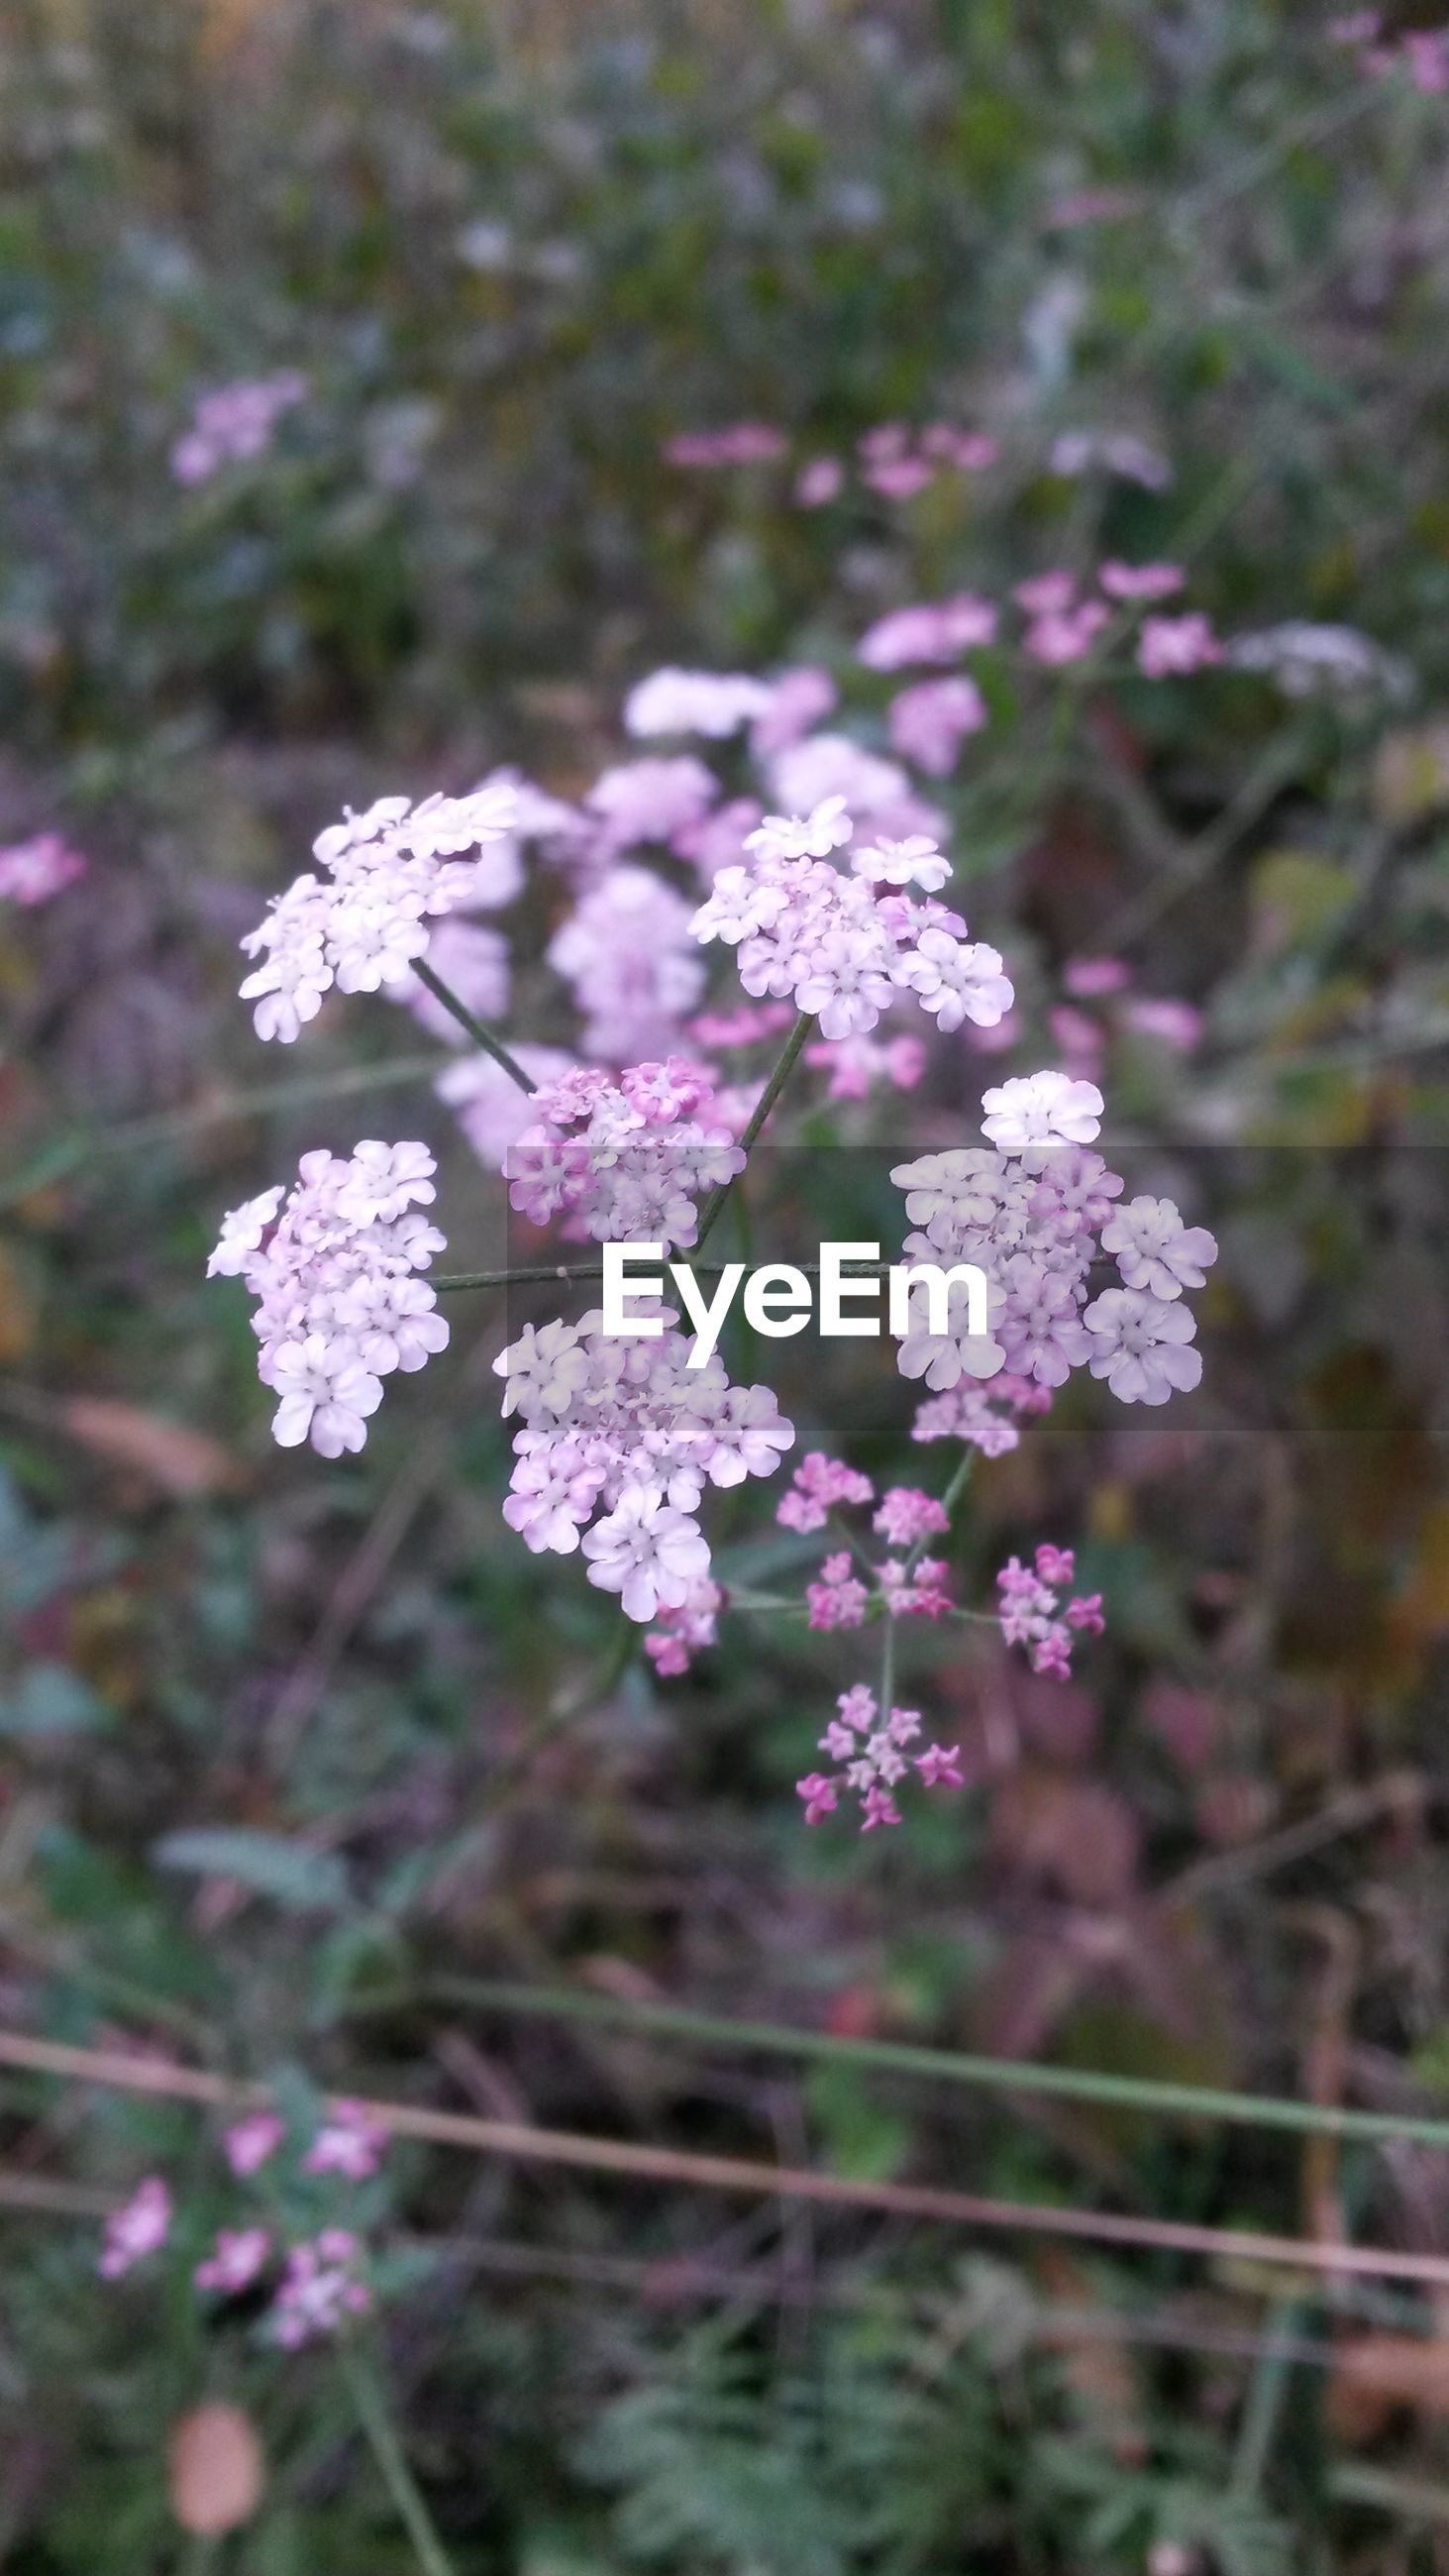 flower, freshness, growth, fragility, beauty in nature, focus on foreground, nature, blooming, petal, plant, close-up, purple, in bloom, flower head, selective focus, pink color, blossom, field, outdoors, day